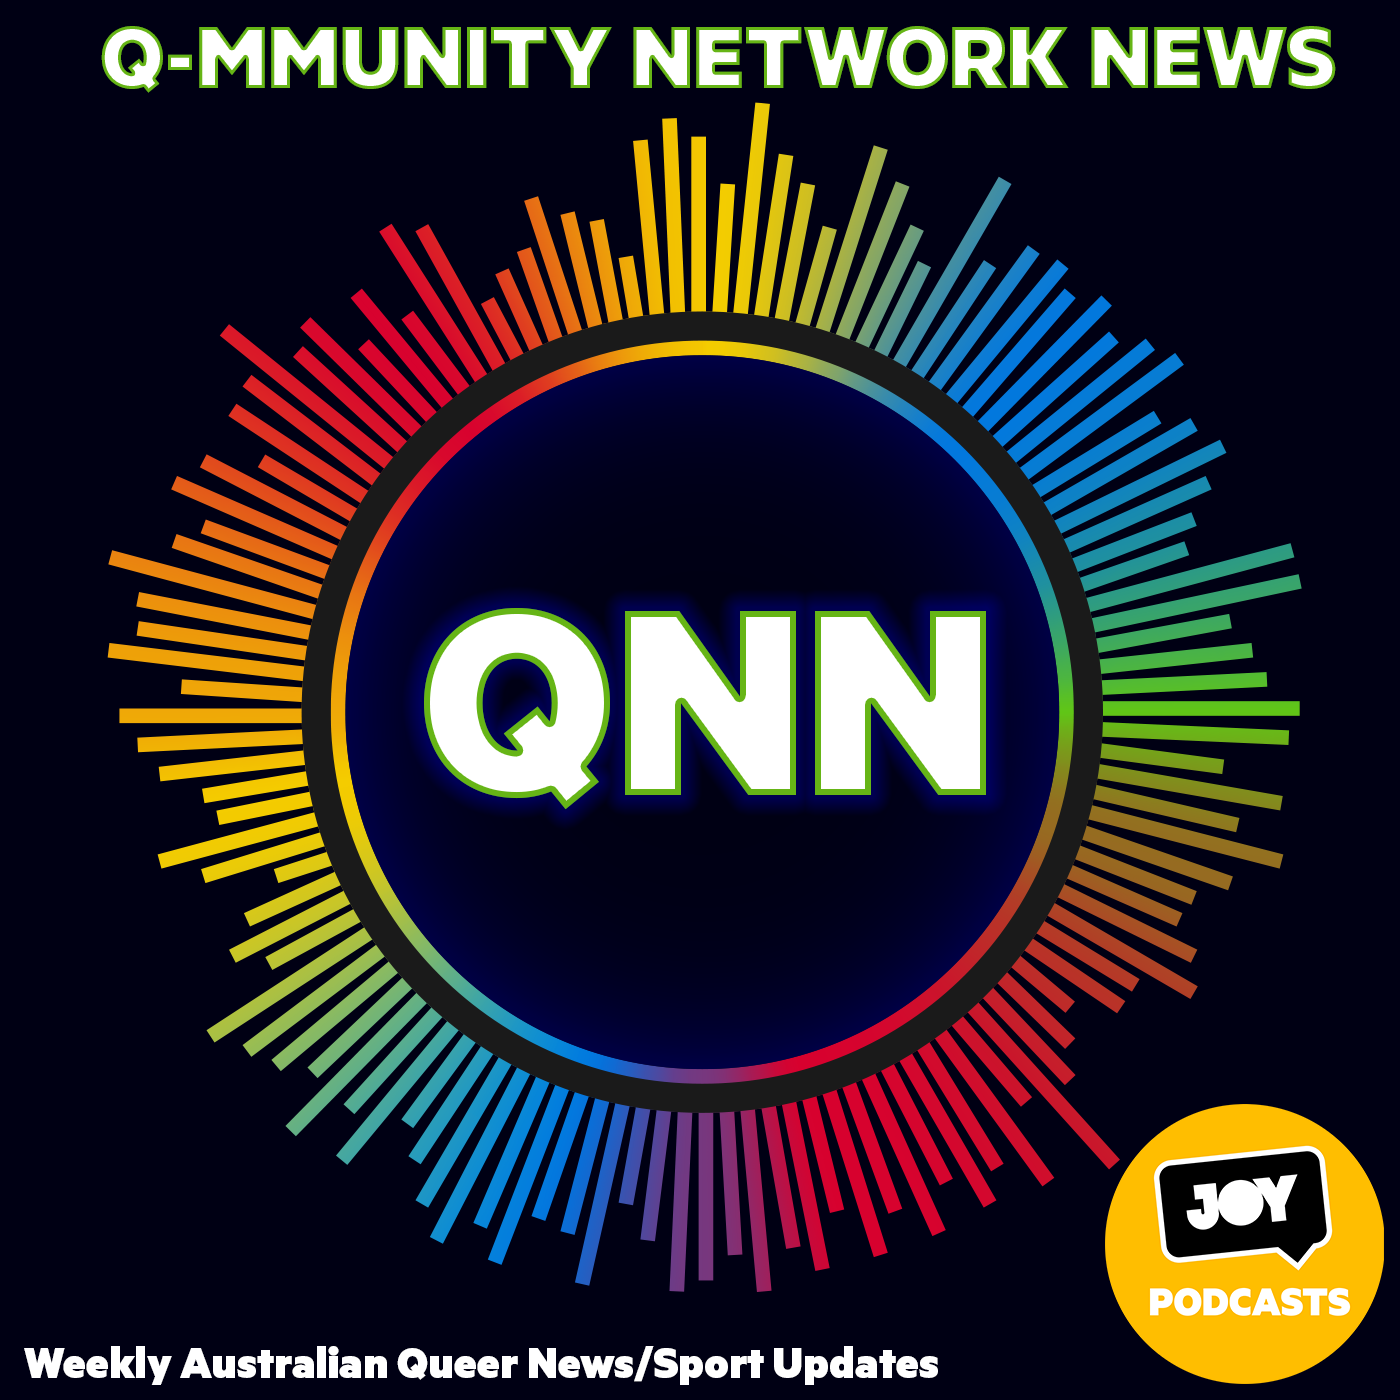 QNN - Weekly Queer News From Australia